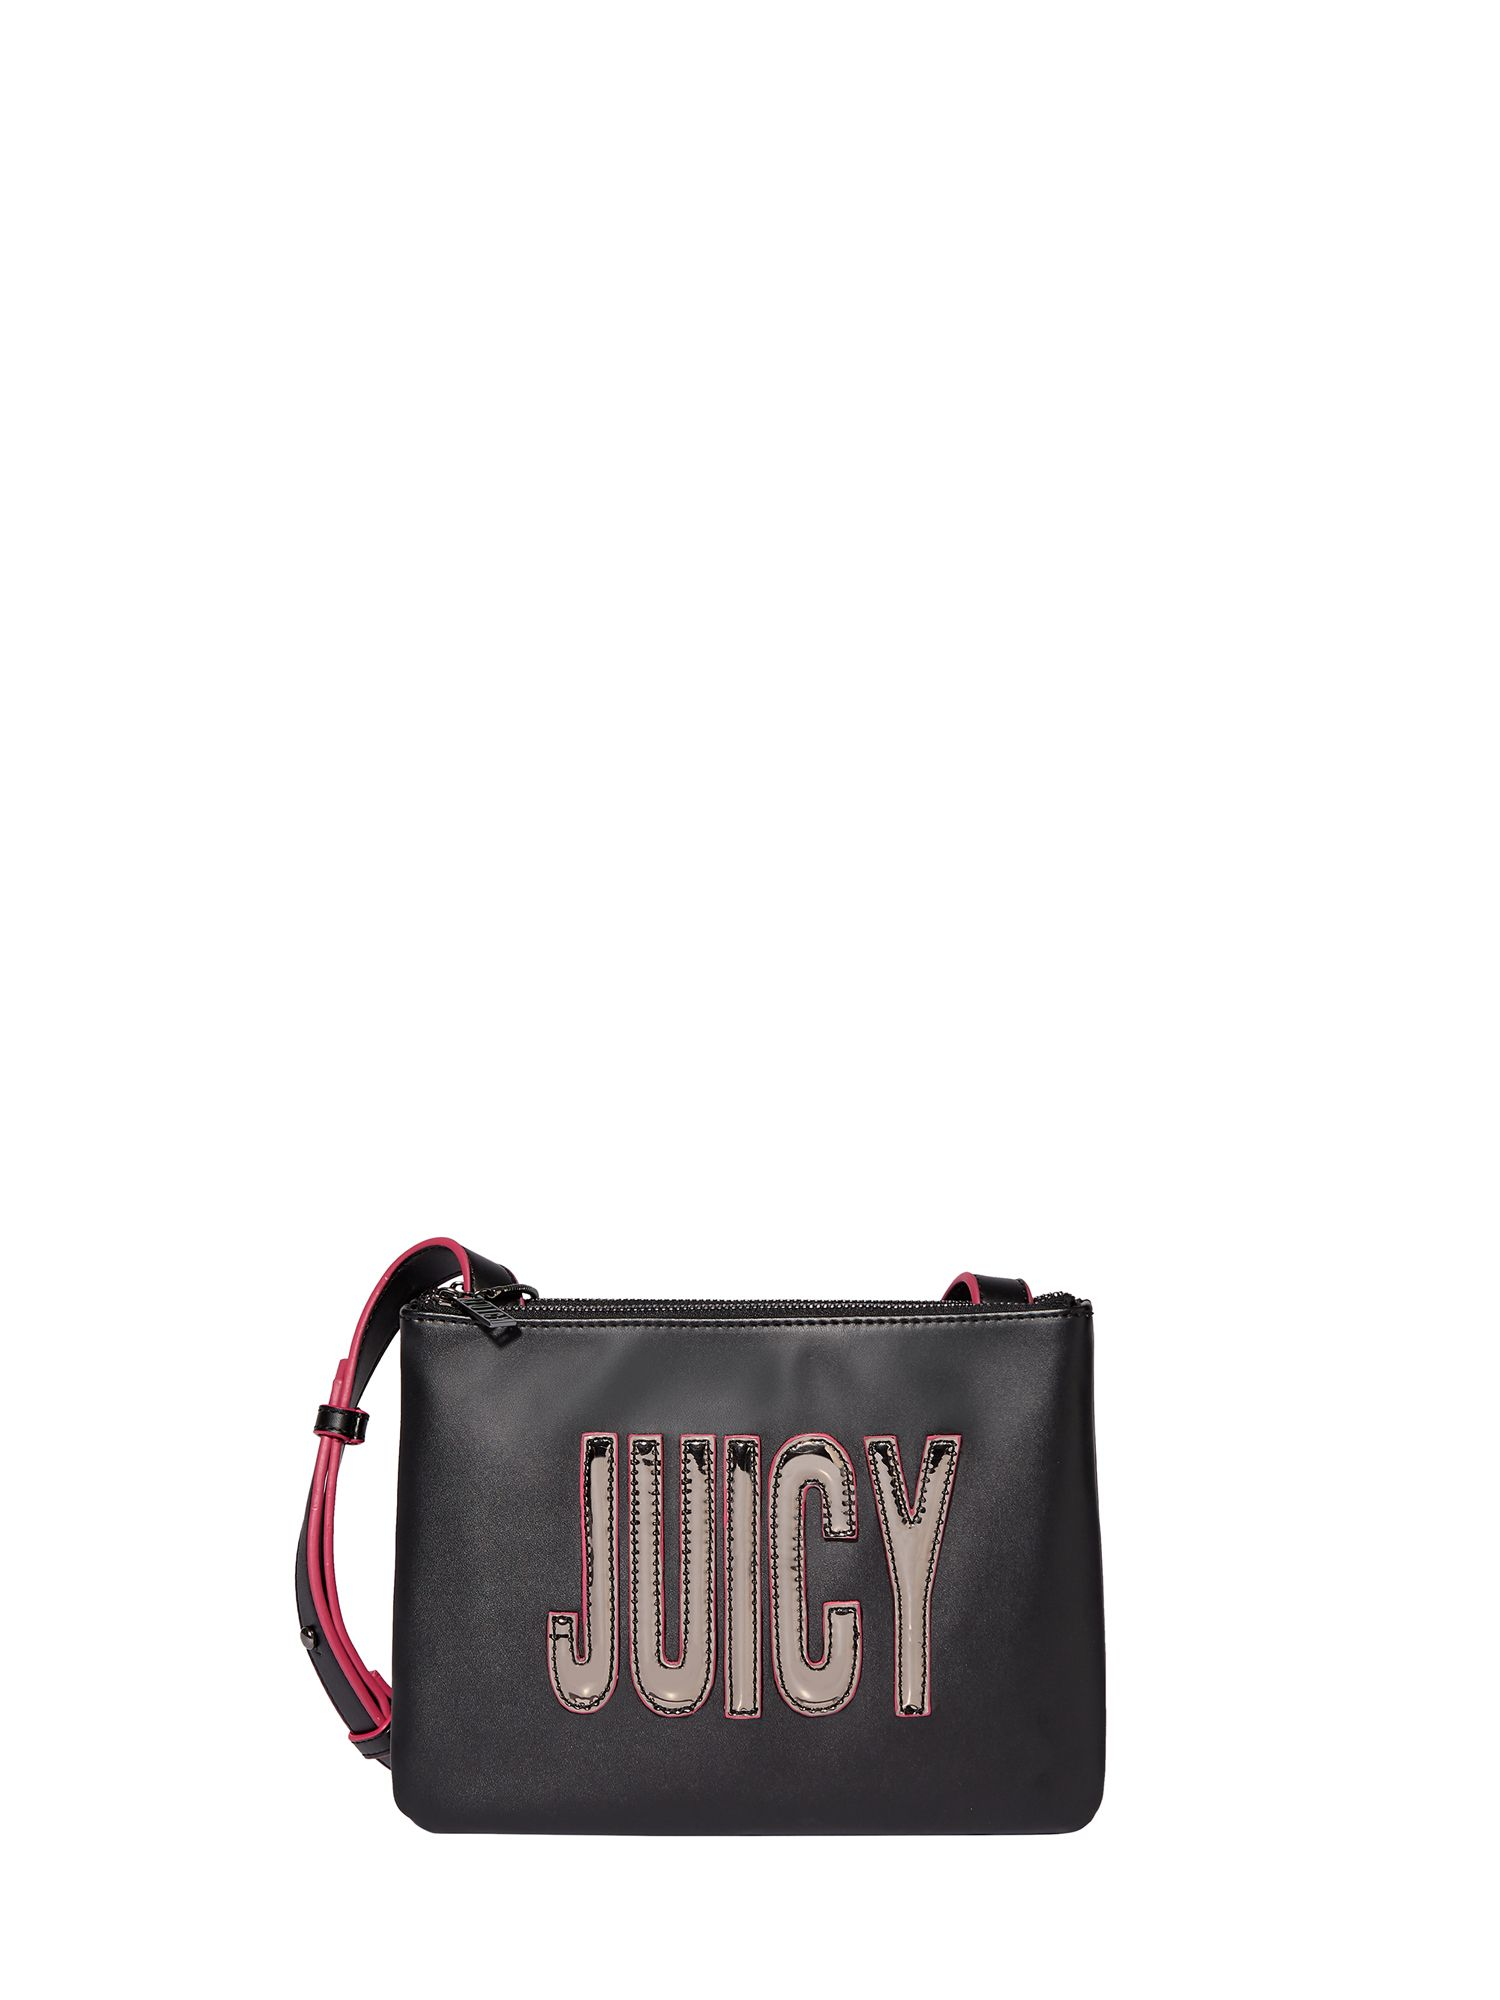 Juicy by Juicy Couture Arianna crossbody, Black